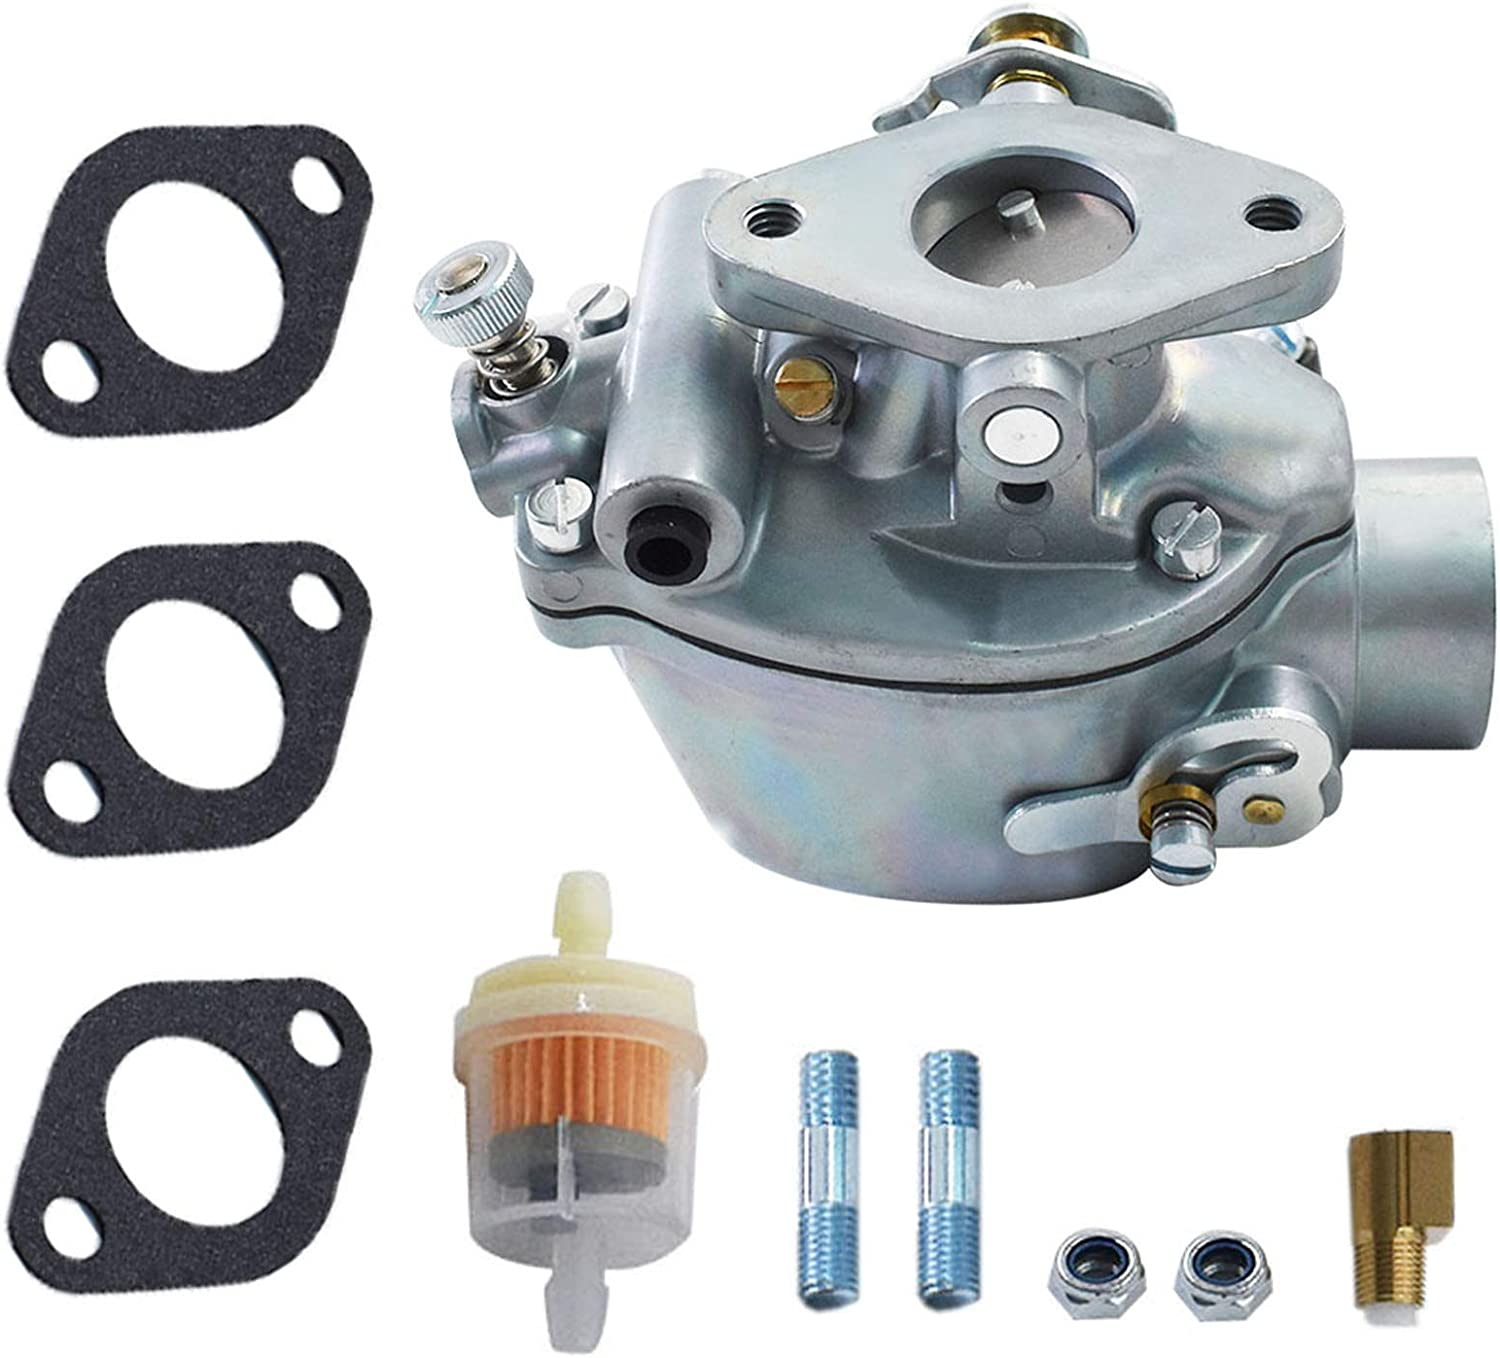 352376R92 Carburetor w/Gaskets Replacement for IH-Farmall Tractor A AV B BN C Super A Super C Replacement for Marvel Schebler TSX156 TSX157 TSX319 Carb: Automotive